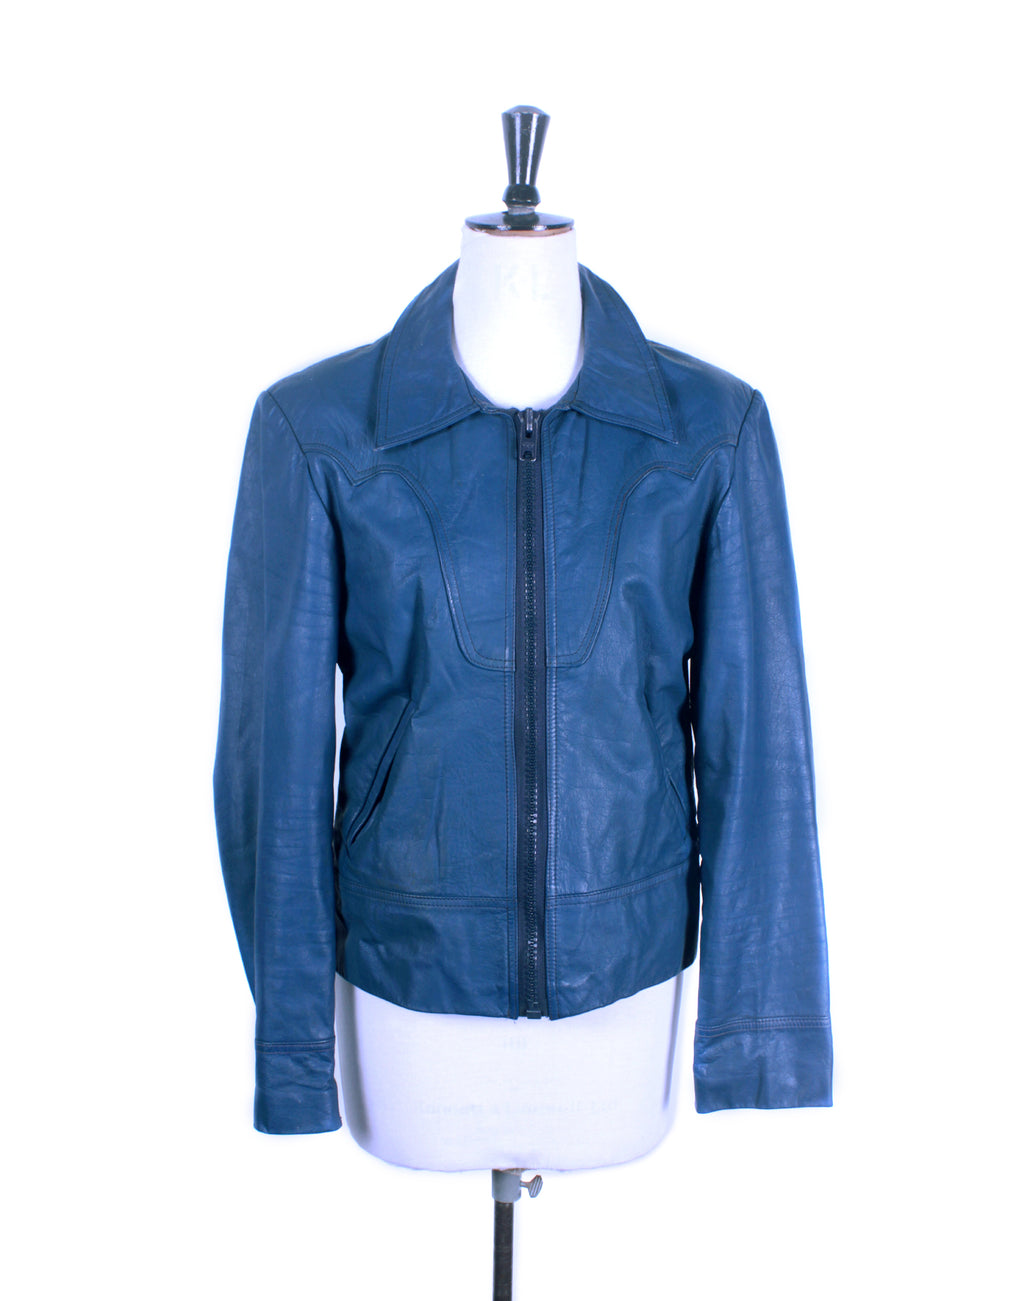 Vintage 70's Blue Leather Zip Jacket